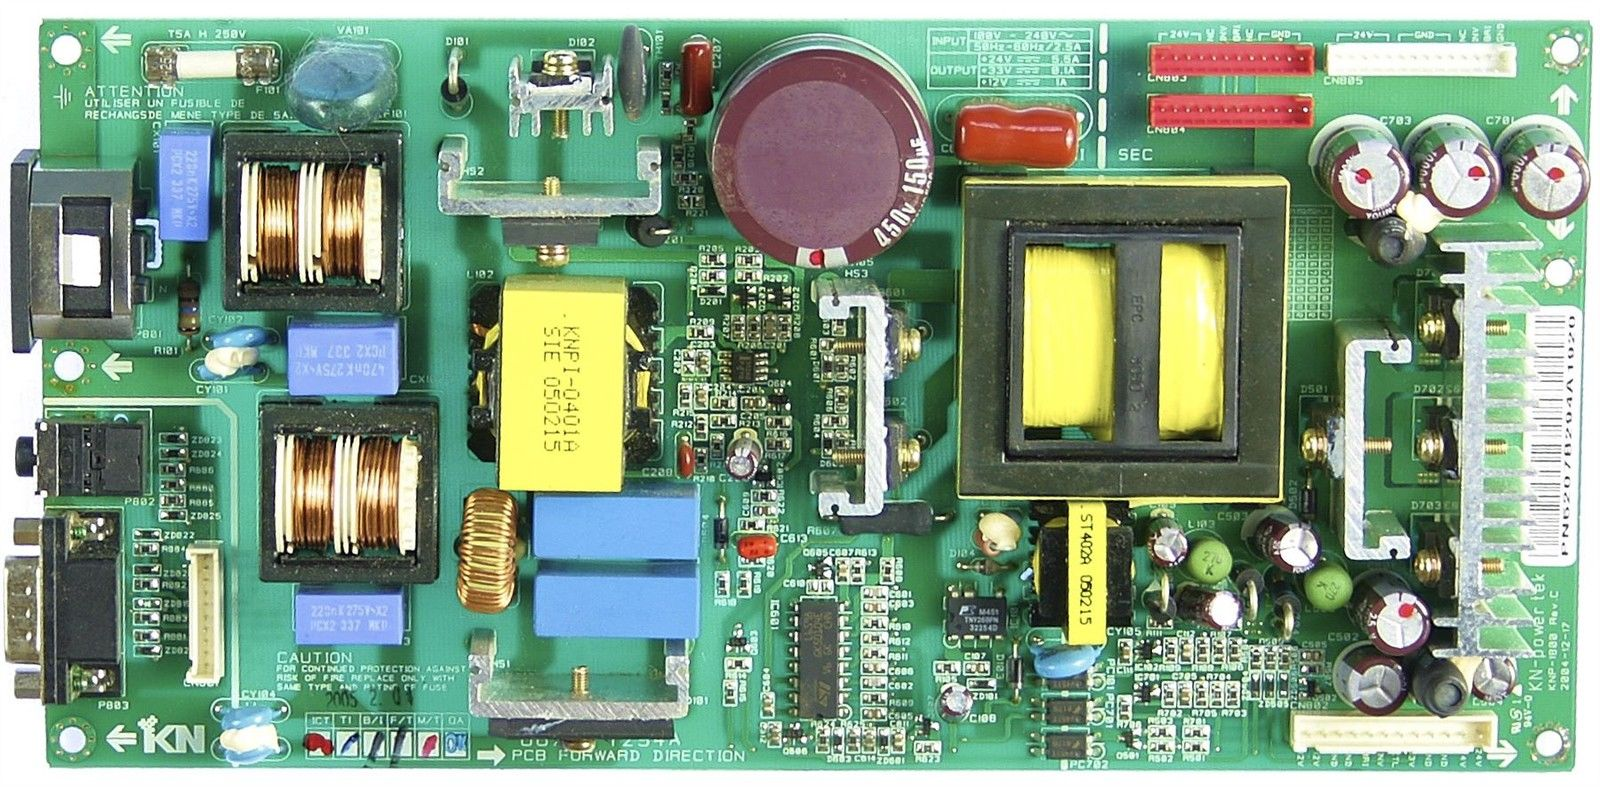 Lg Zenith 6871TPT294A Power Supply Board KNP-1800 23LX1R